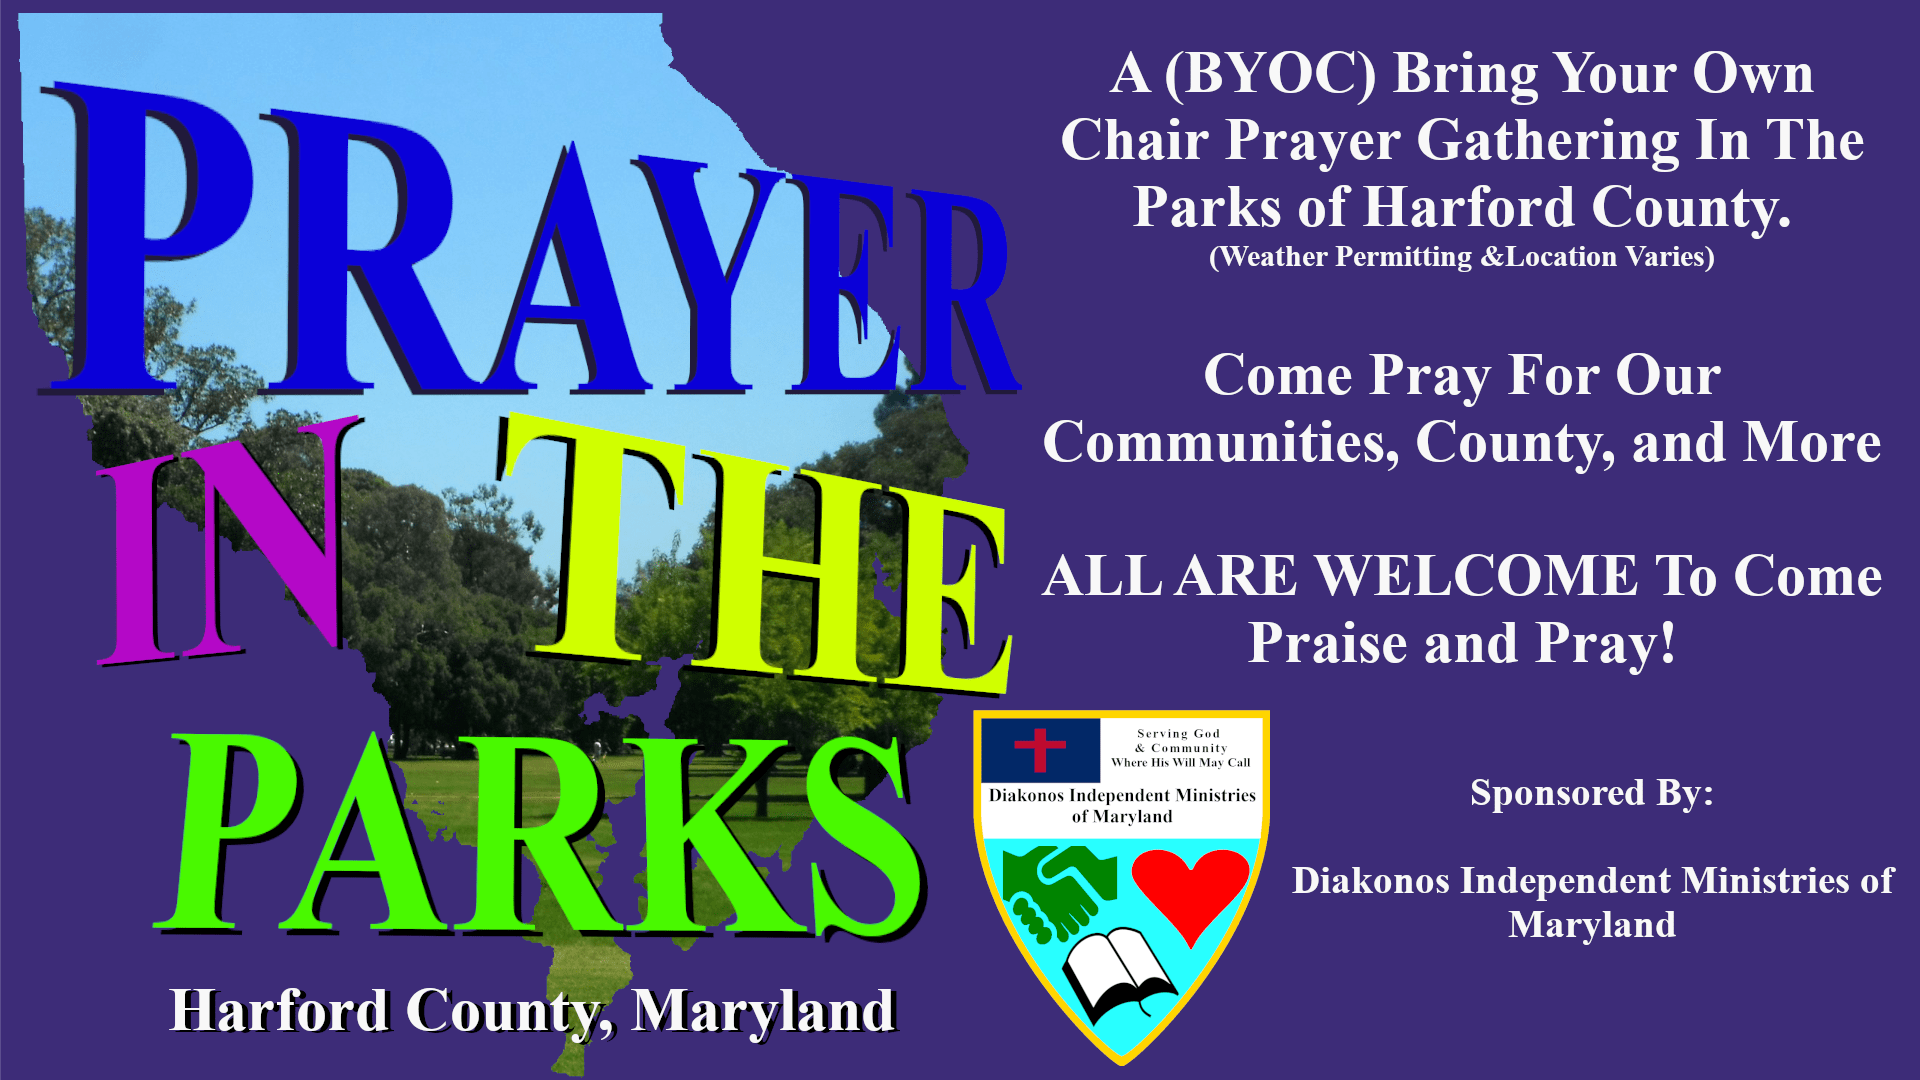 DIMOM is attempting to plan a Prayer In The Parks Program. This program would offer a weekly prayer gathering at local Harford County, Maryland Parks and outdoor spaces.